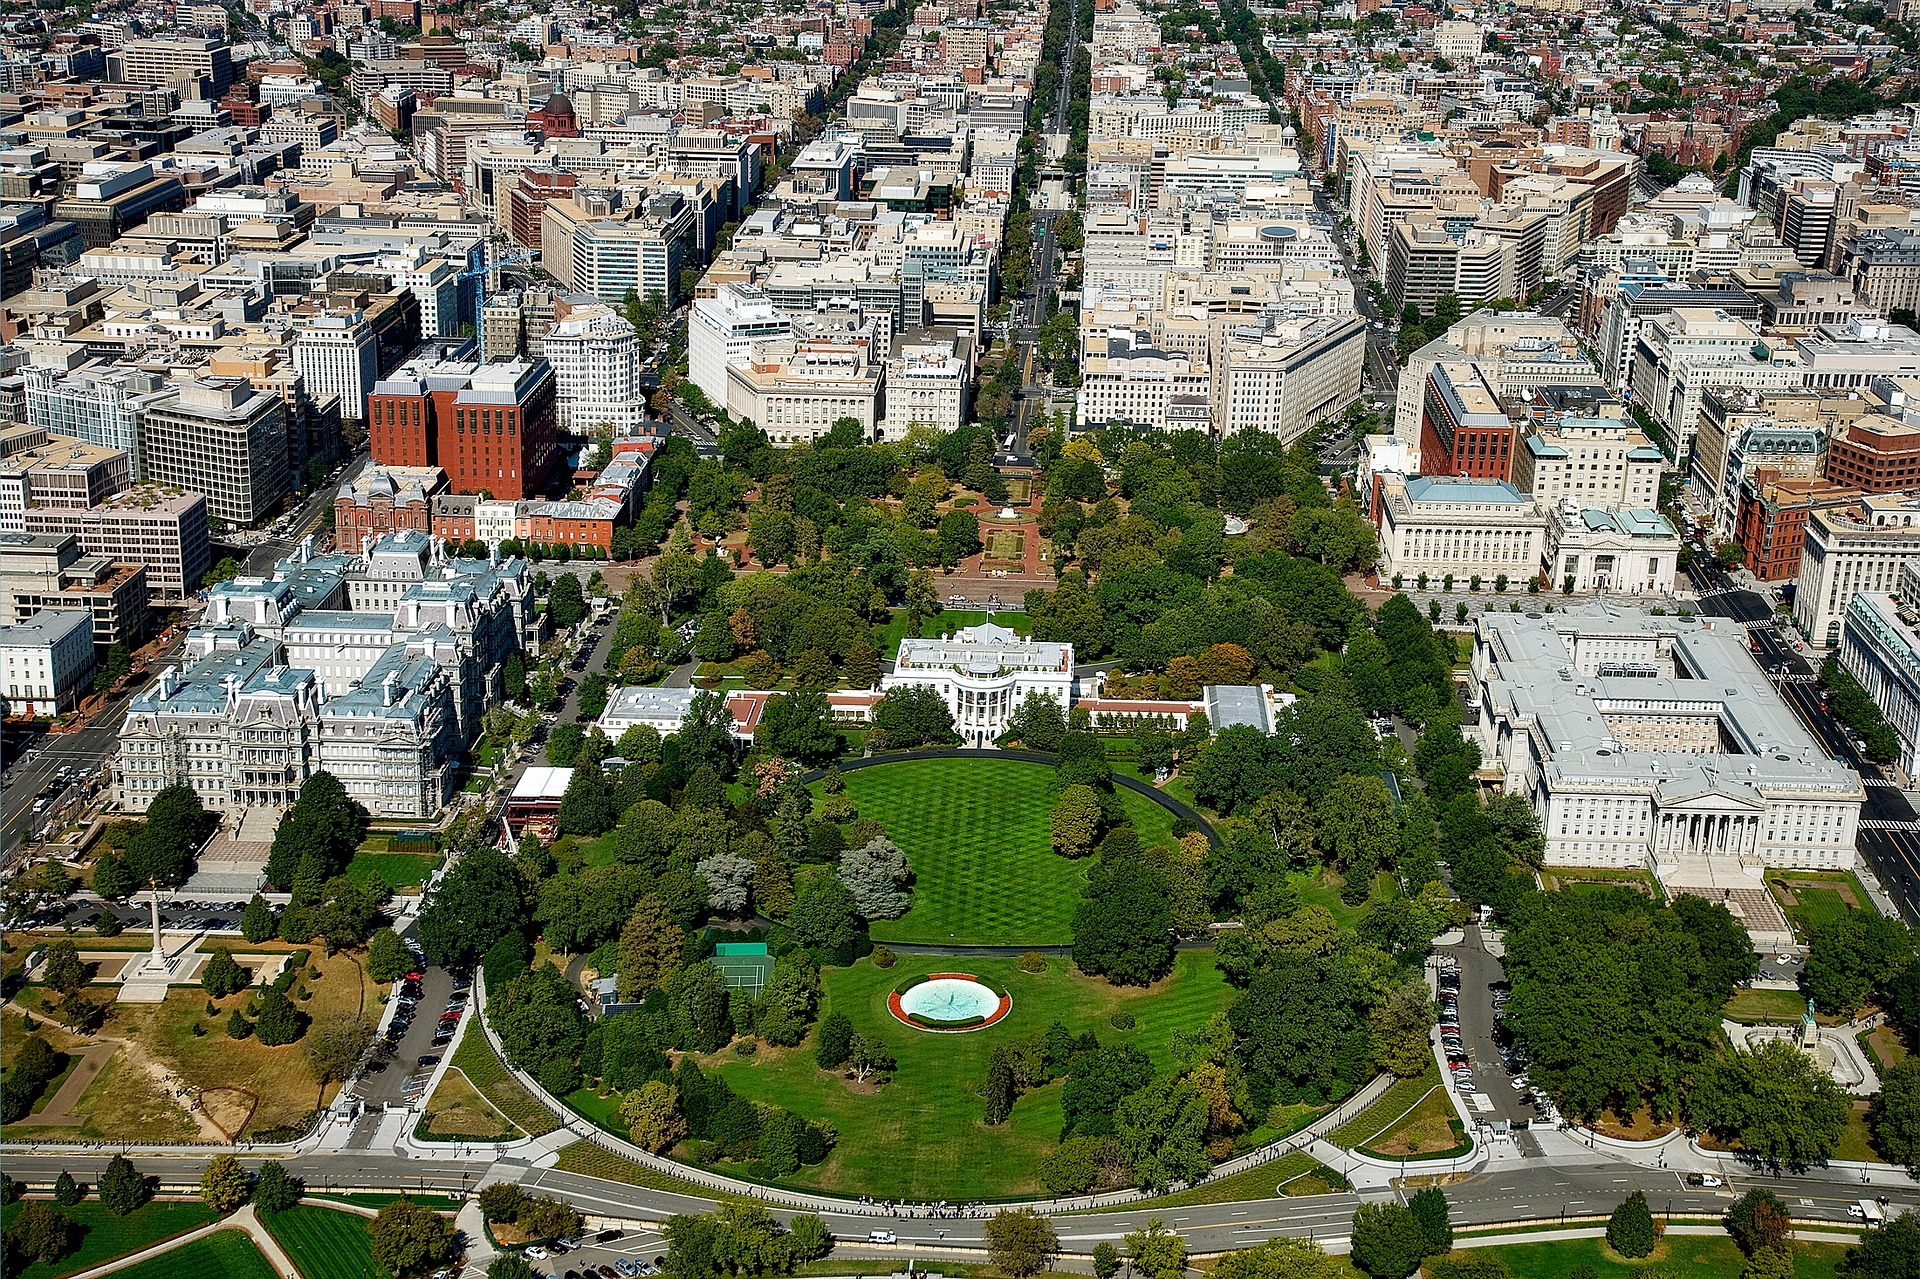 Aerial view of Washington, D.C. with The White House in center